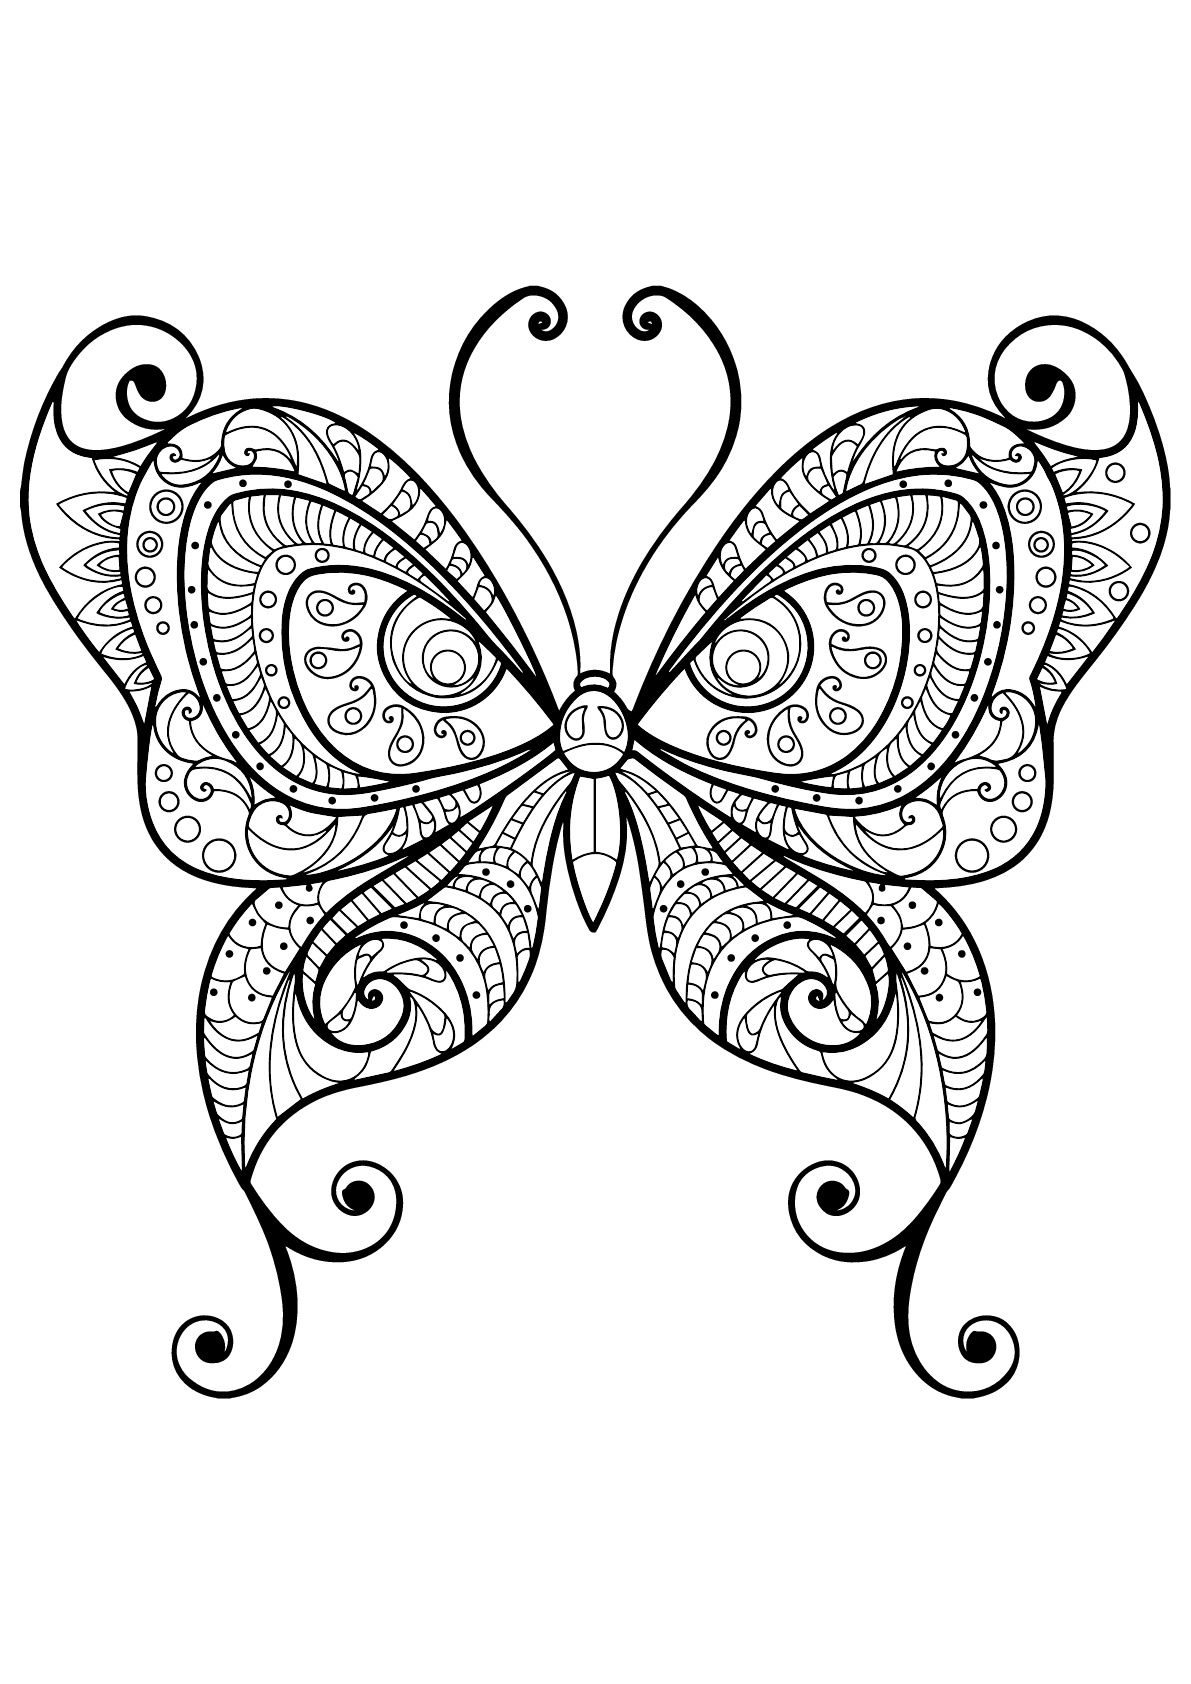 Butterfly Beautiful Patterns 10 Butterfly With Beautiful Patterns 10 From The Gallery In Butterfly Coloring Page Butterfly Mandala Insect Coloring Pages [ 1684 x 1191 Pixel ]